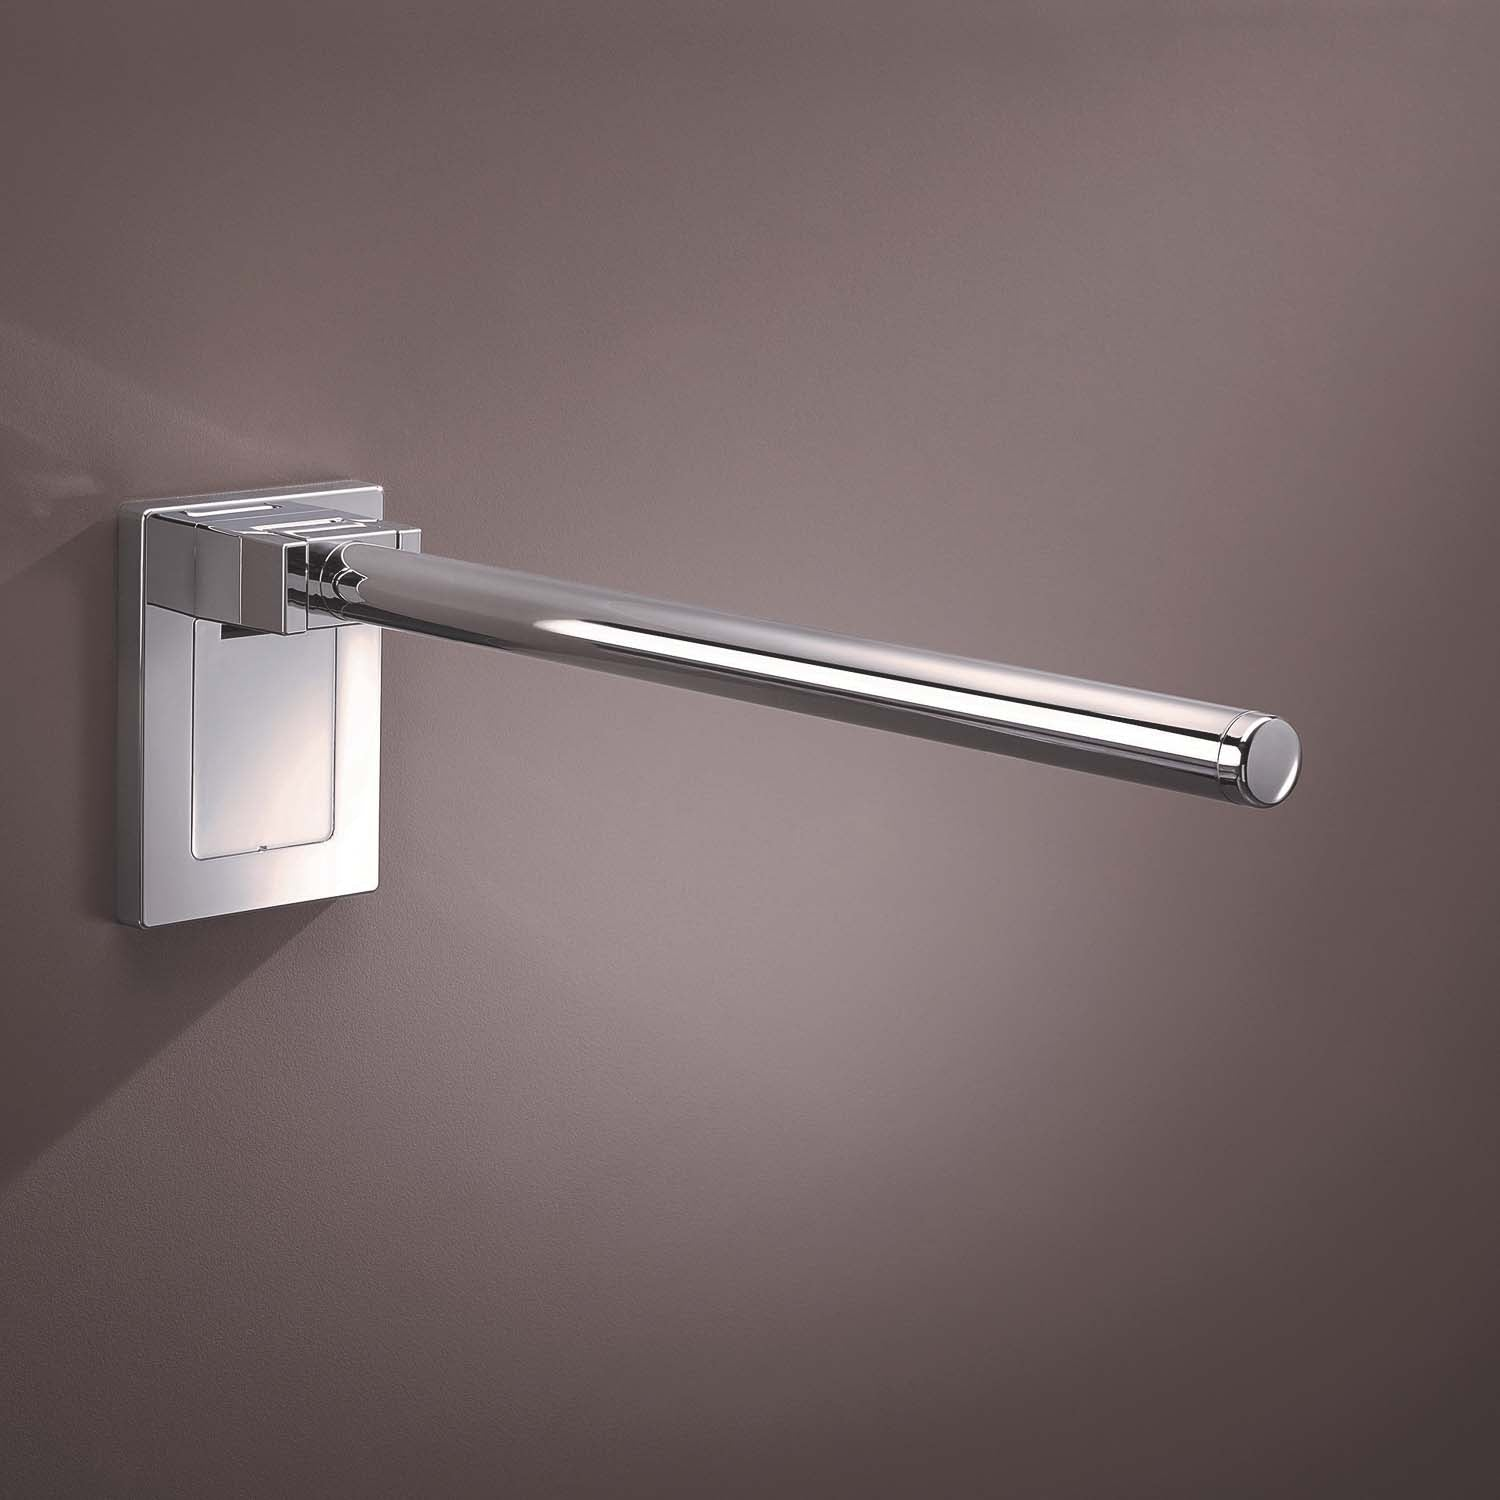 700mm Circula Removable Hinged Grab Rail with a chrome-look finish lifestyle image